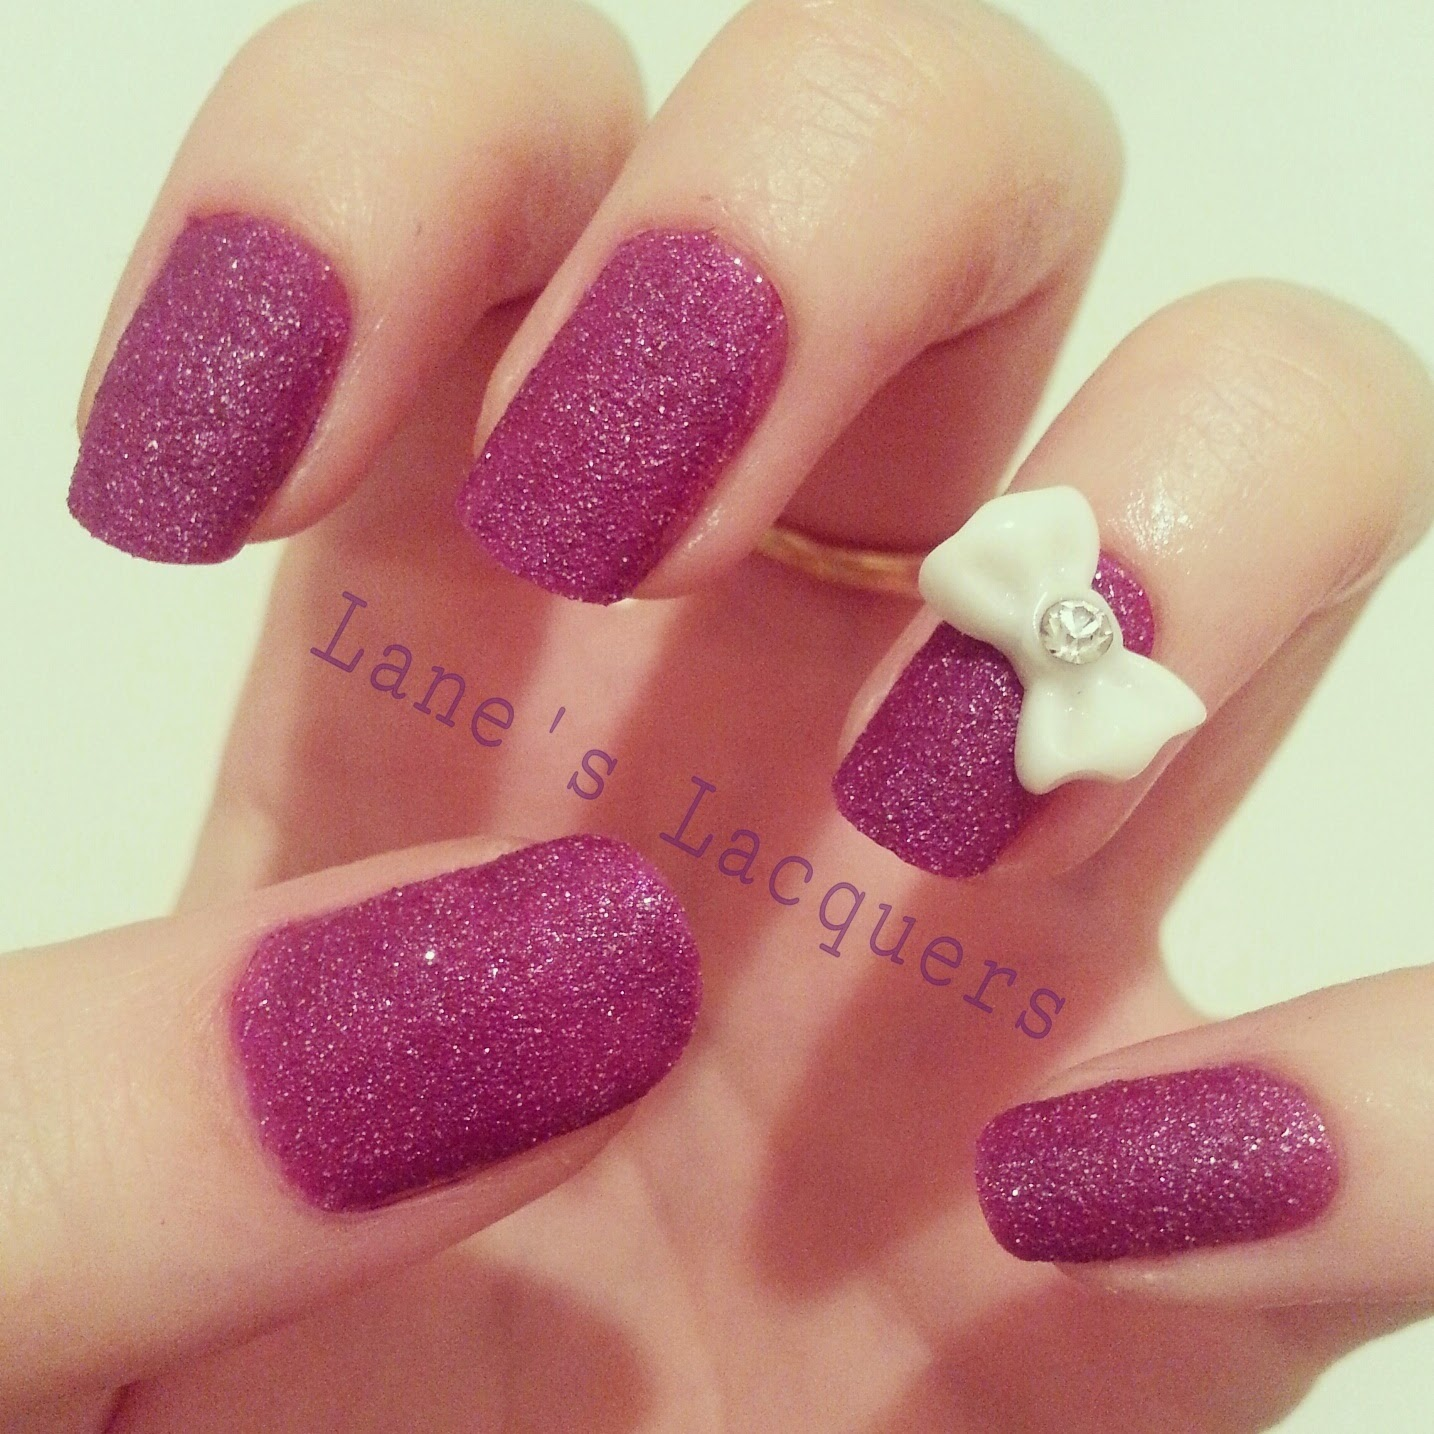 OPI-liquid-sand-my-secret-crush-3d-bow-manicure (1)